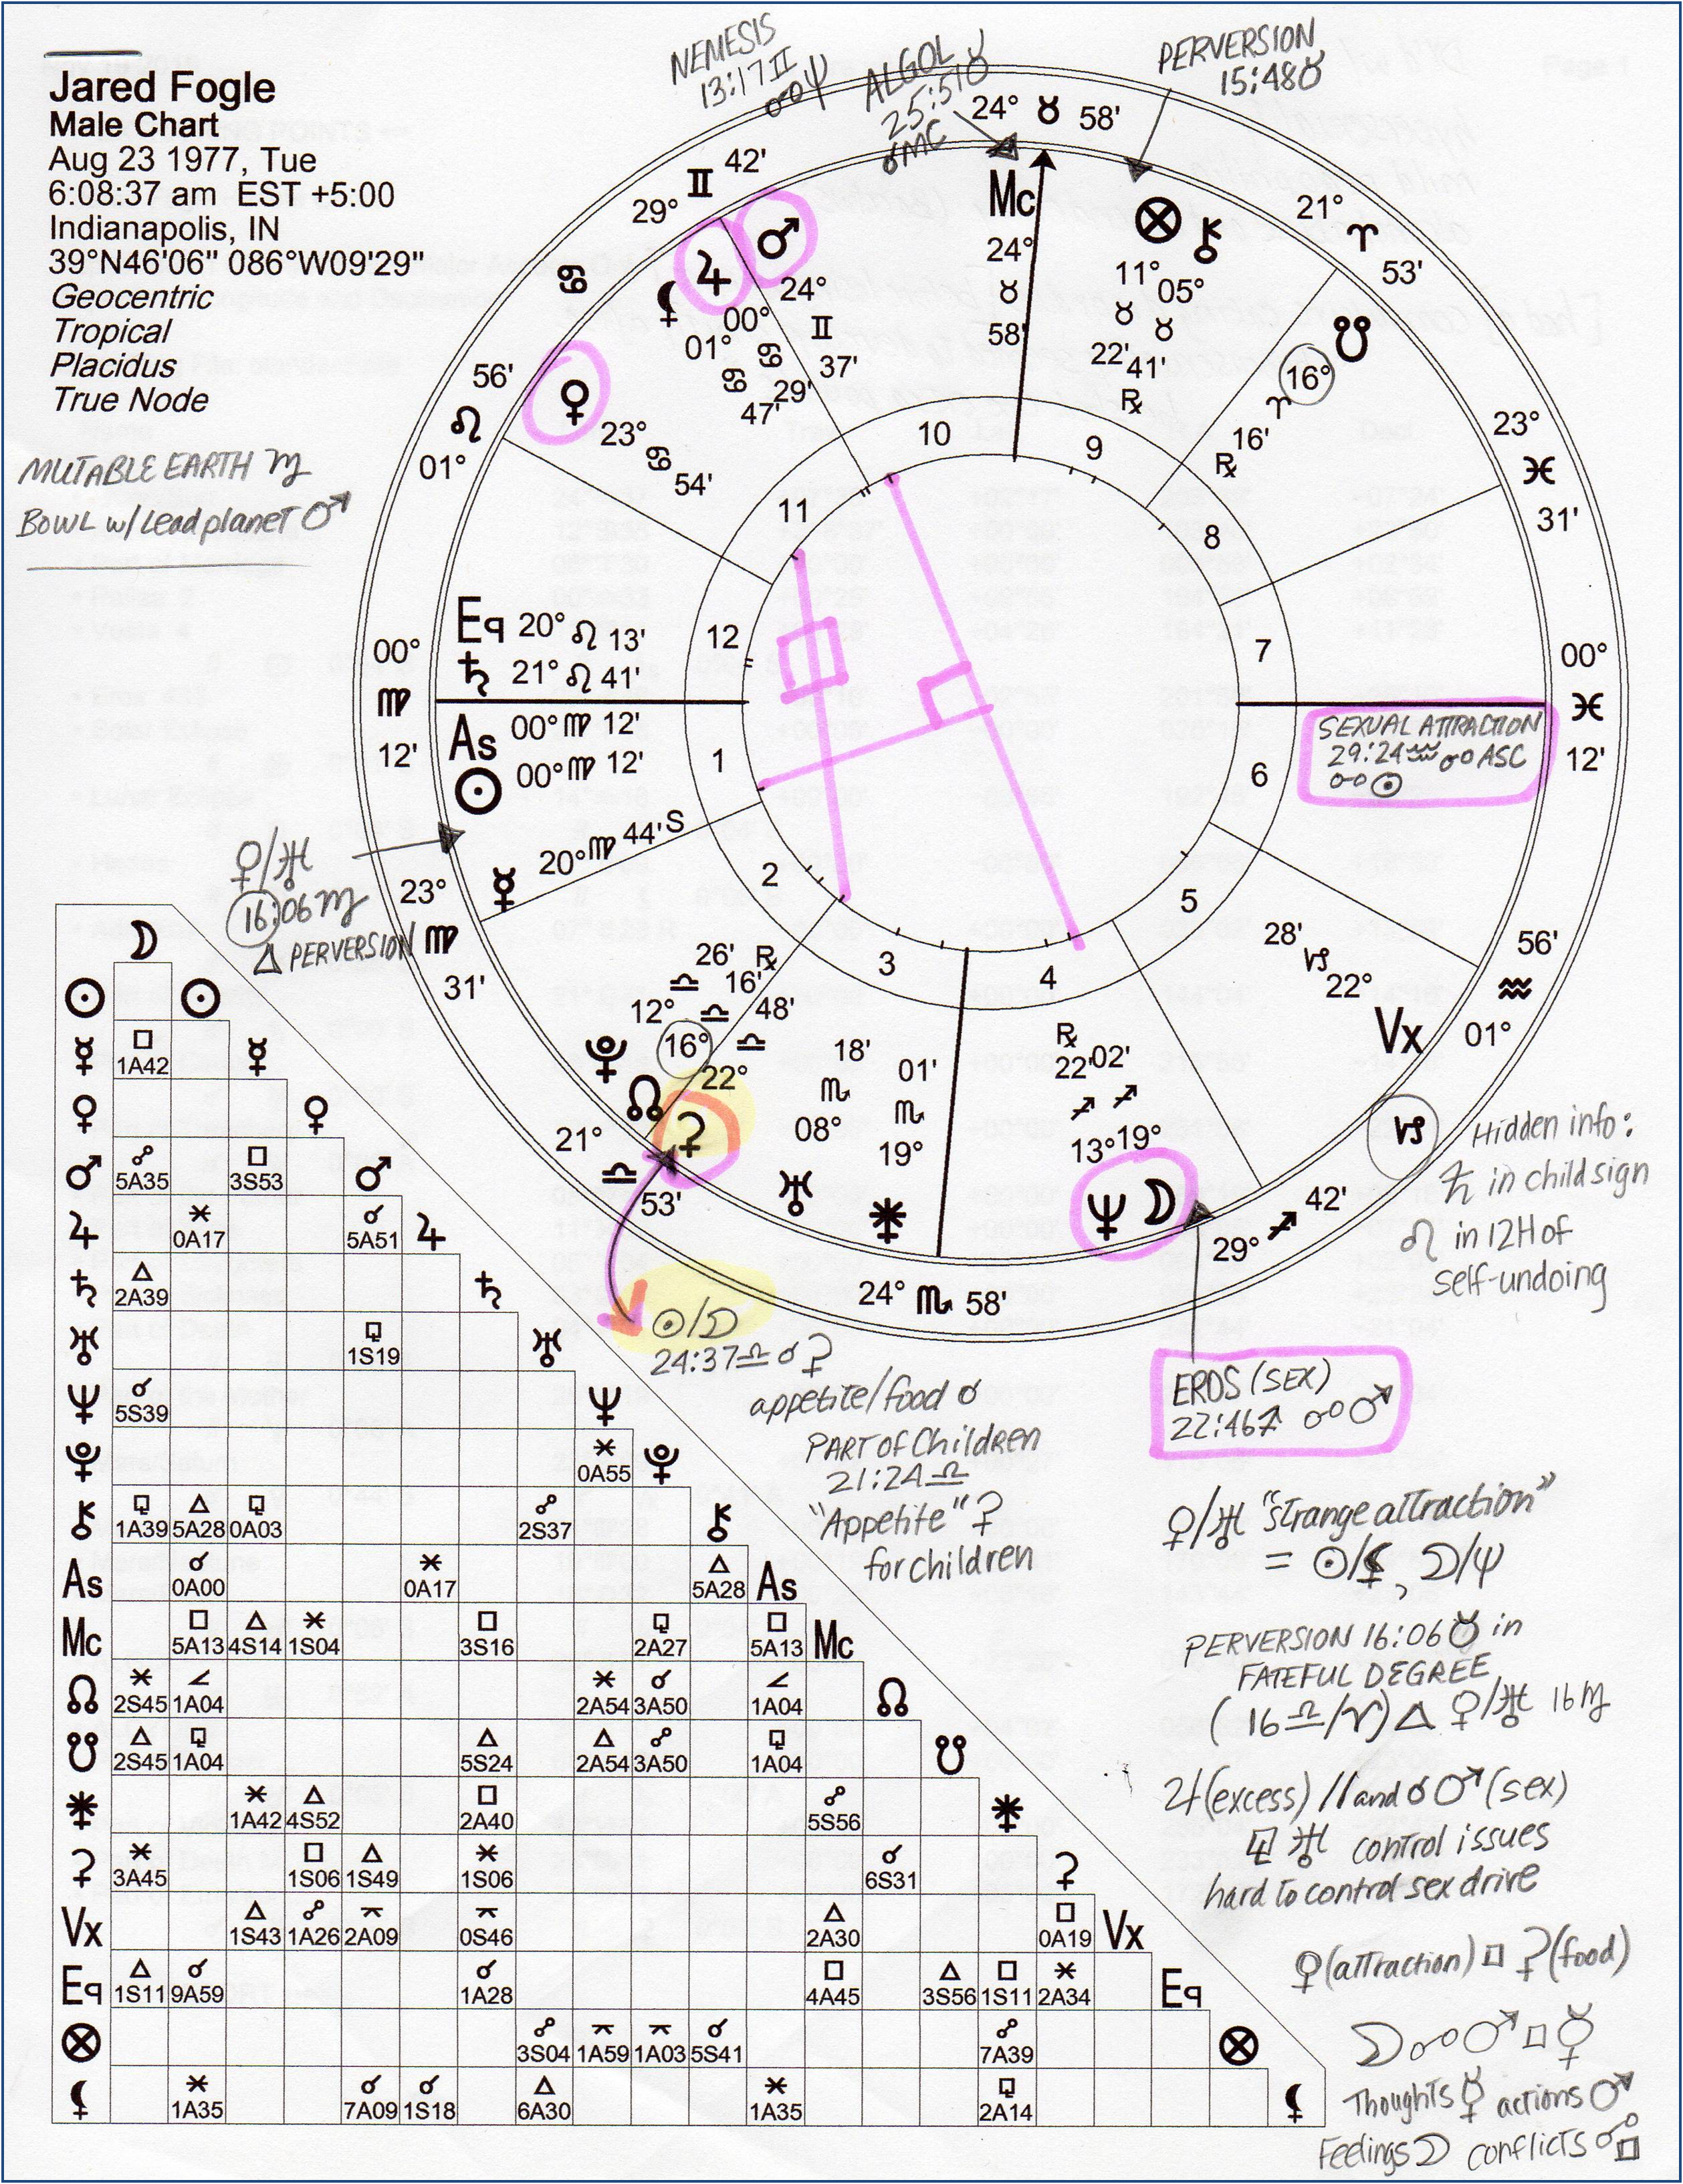 Forensic astrology chart of a pedophile living with cards jared fogle natal astrology chart sun on ascendant httplivingwithcards nvjuhfo Image collections